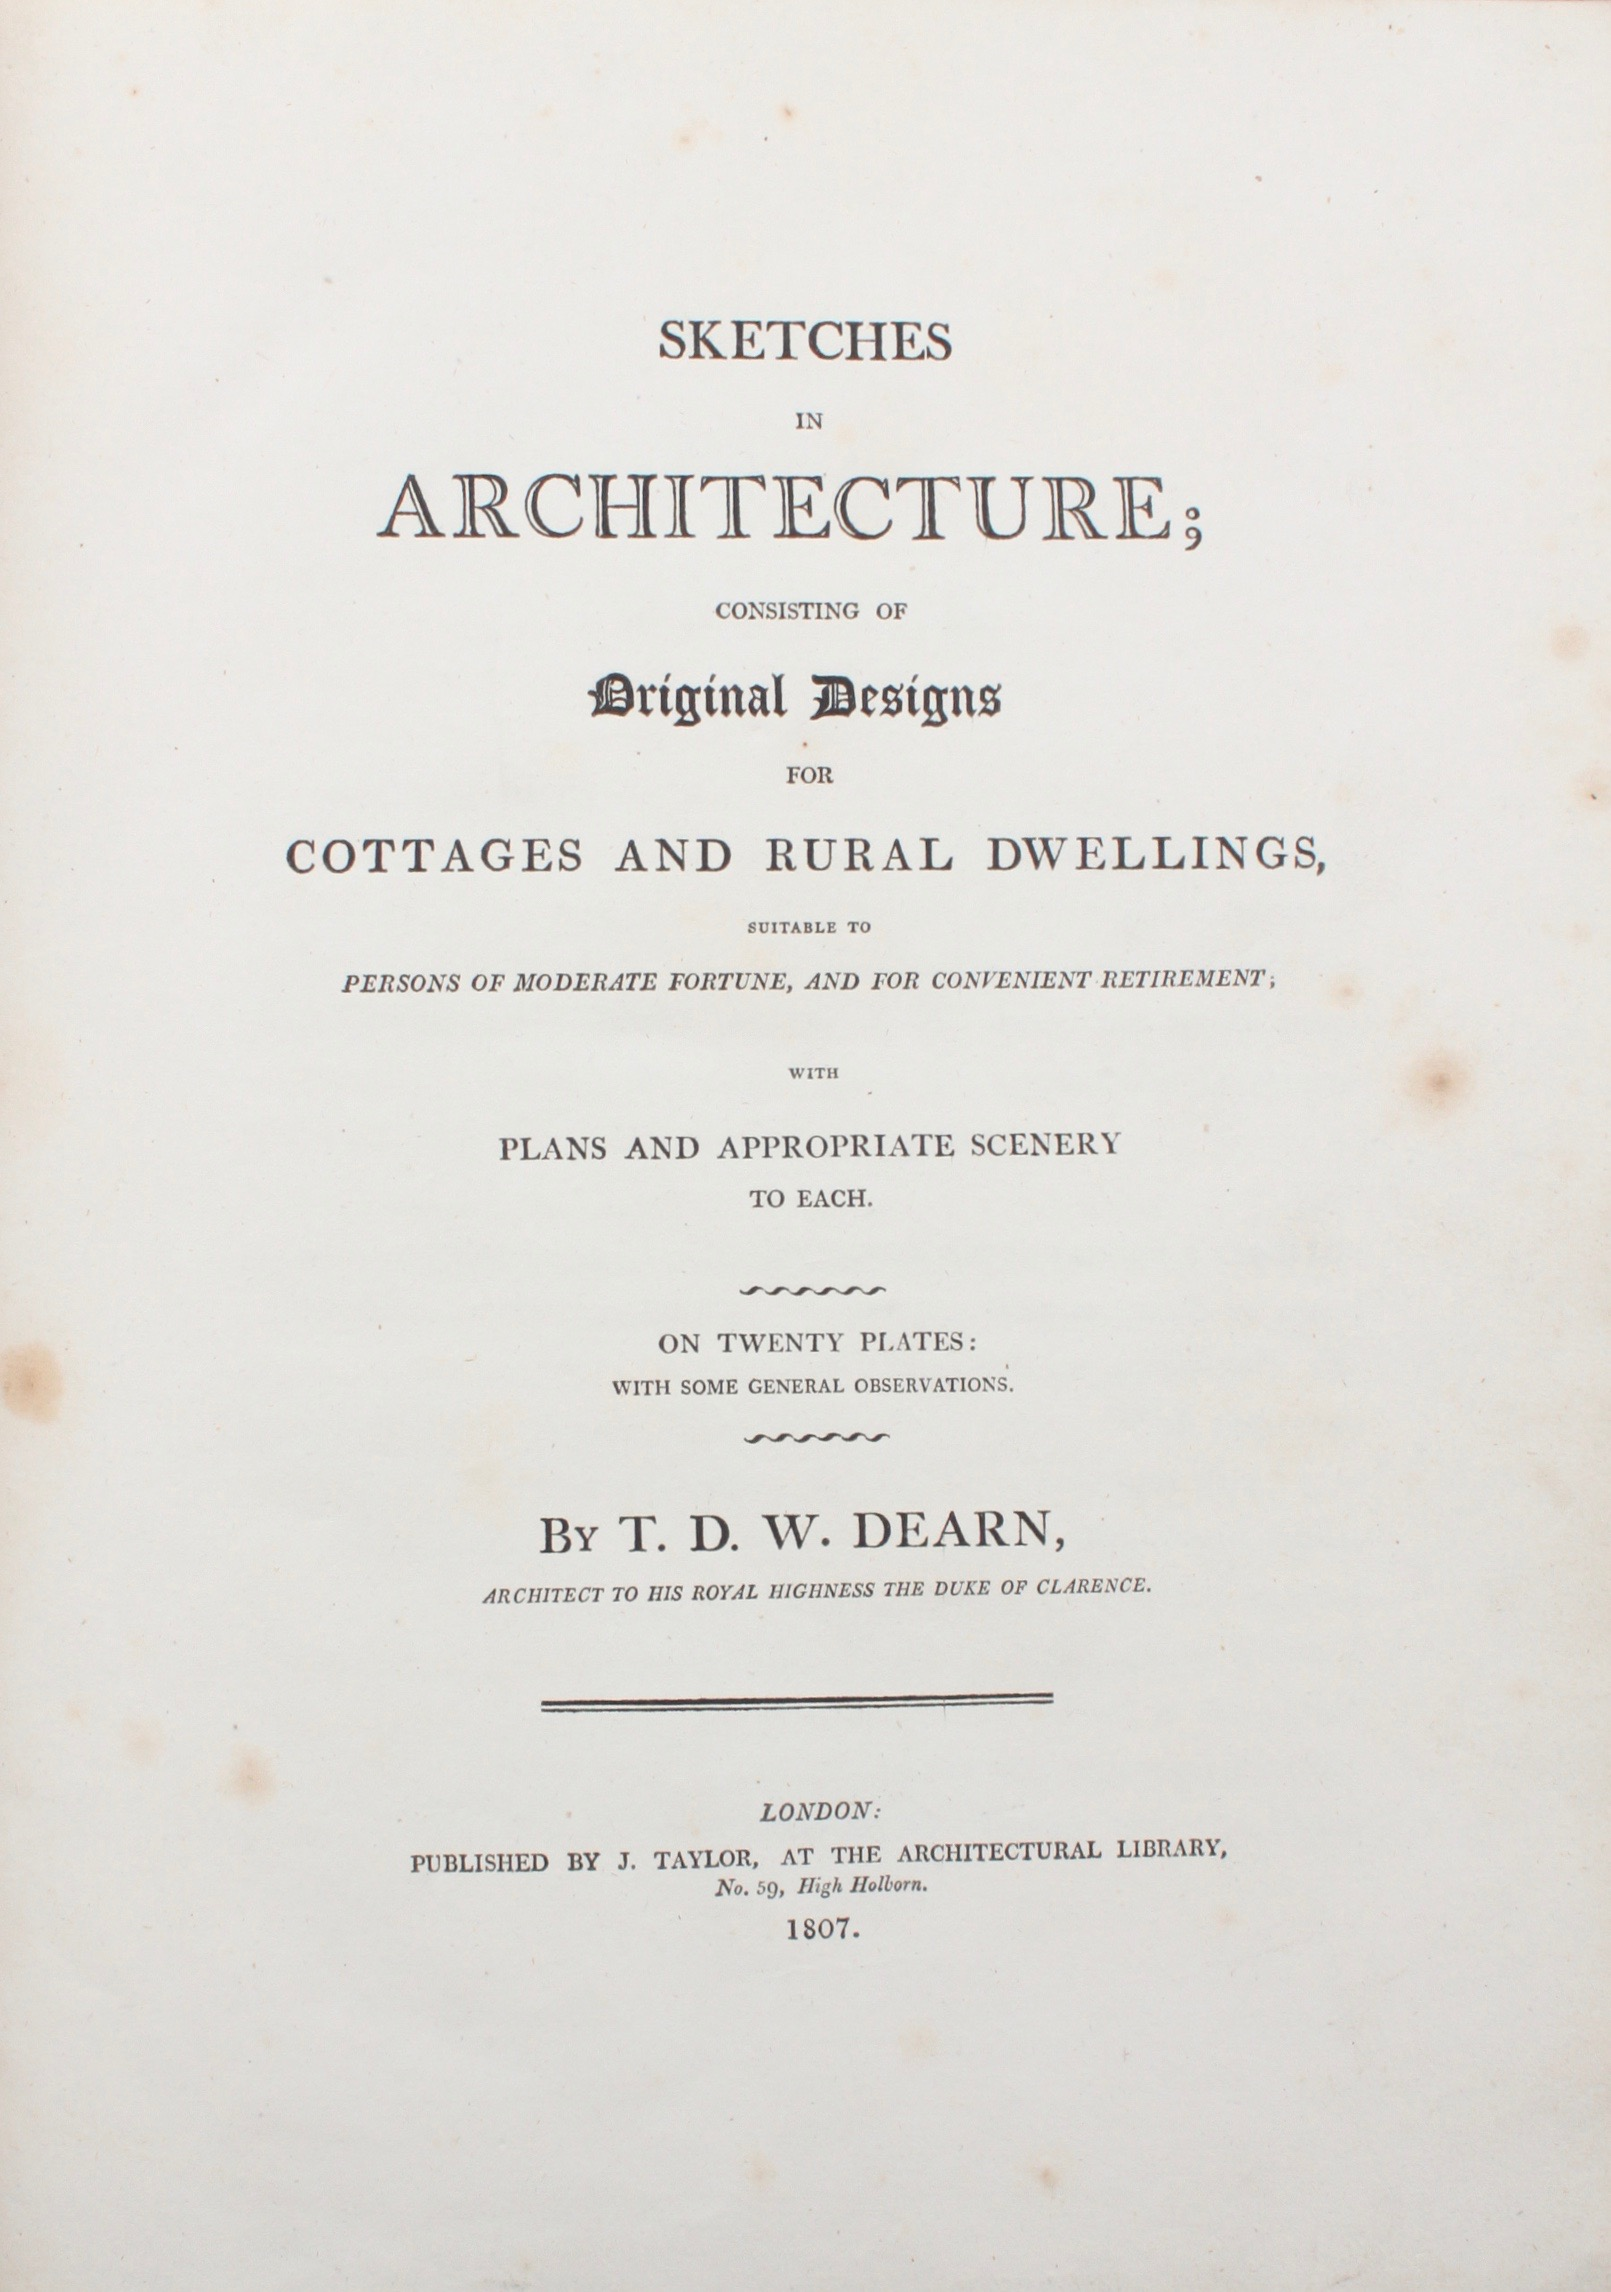 Image for Sketches in Architecture; Consisting of Original Designs For Cottages and Rural Dwellings, Suitable to Persons of Moderate Fortune, and for Convenient Retirement; With Plans and Appropriate Scenery to Each. On Twenty Plates: With General Observations.